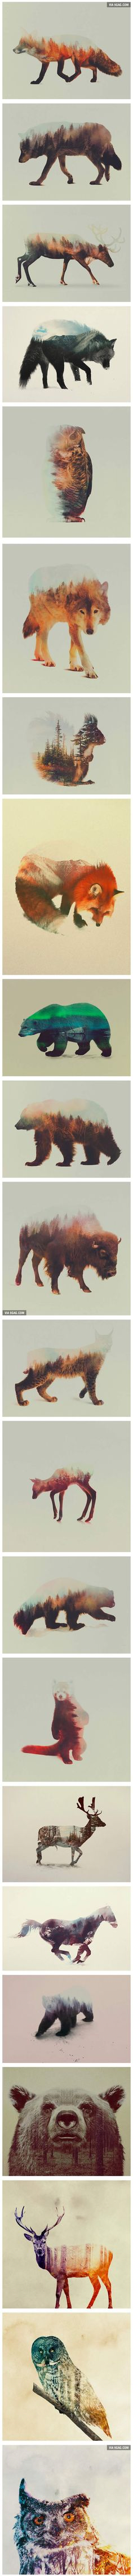 Double exposure pictures would look awesome as a tattoo! Would get the wolf one